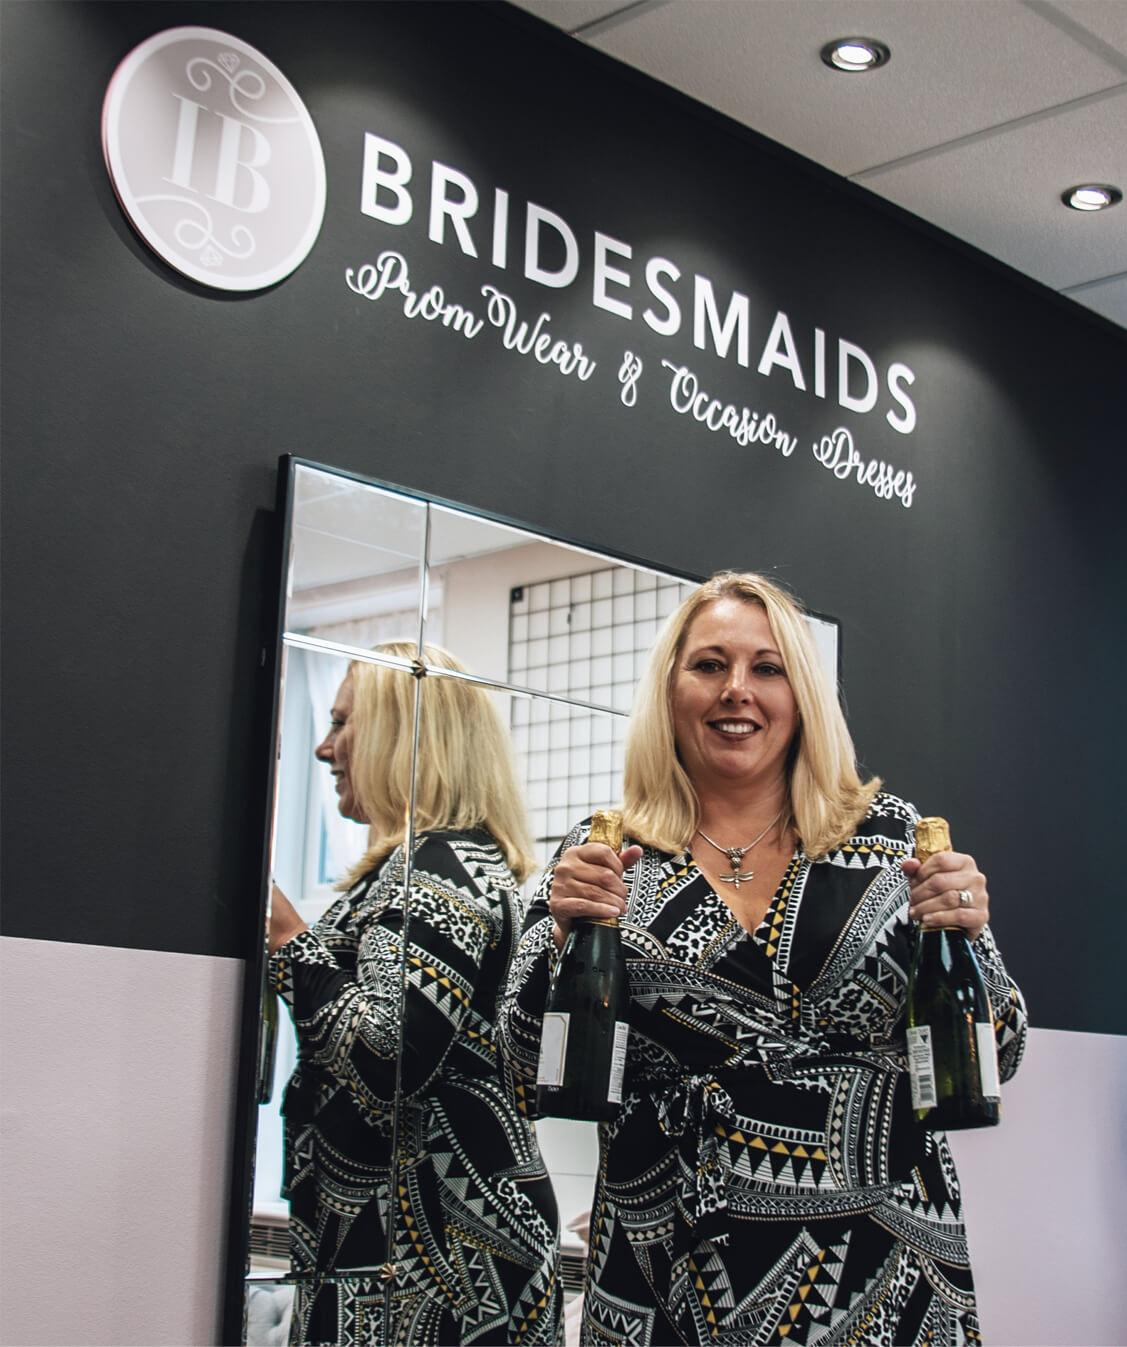 Owner Tina Wade celebrating the opening of the Iconic Bridesmaids Store